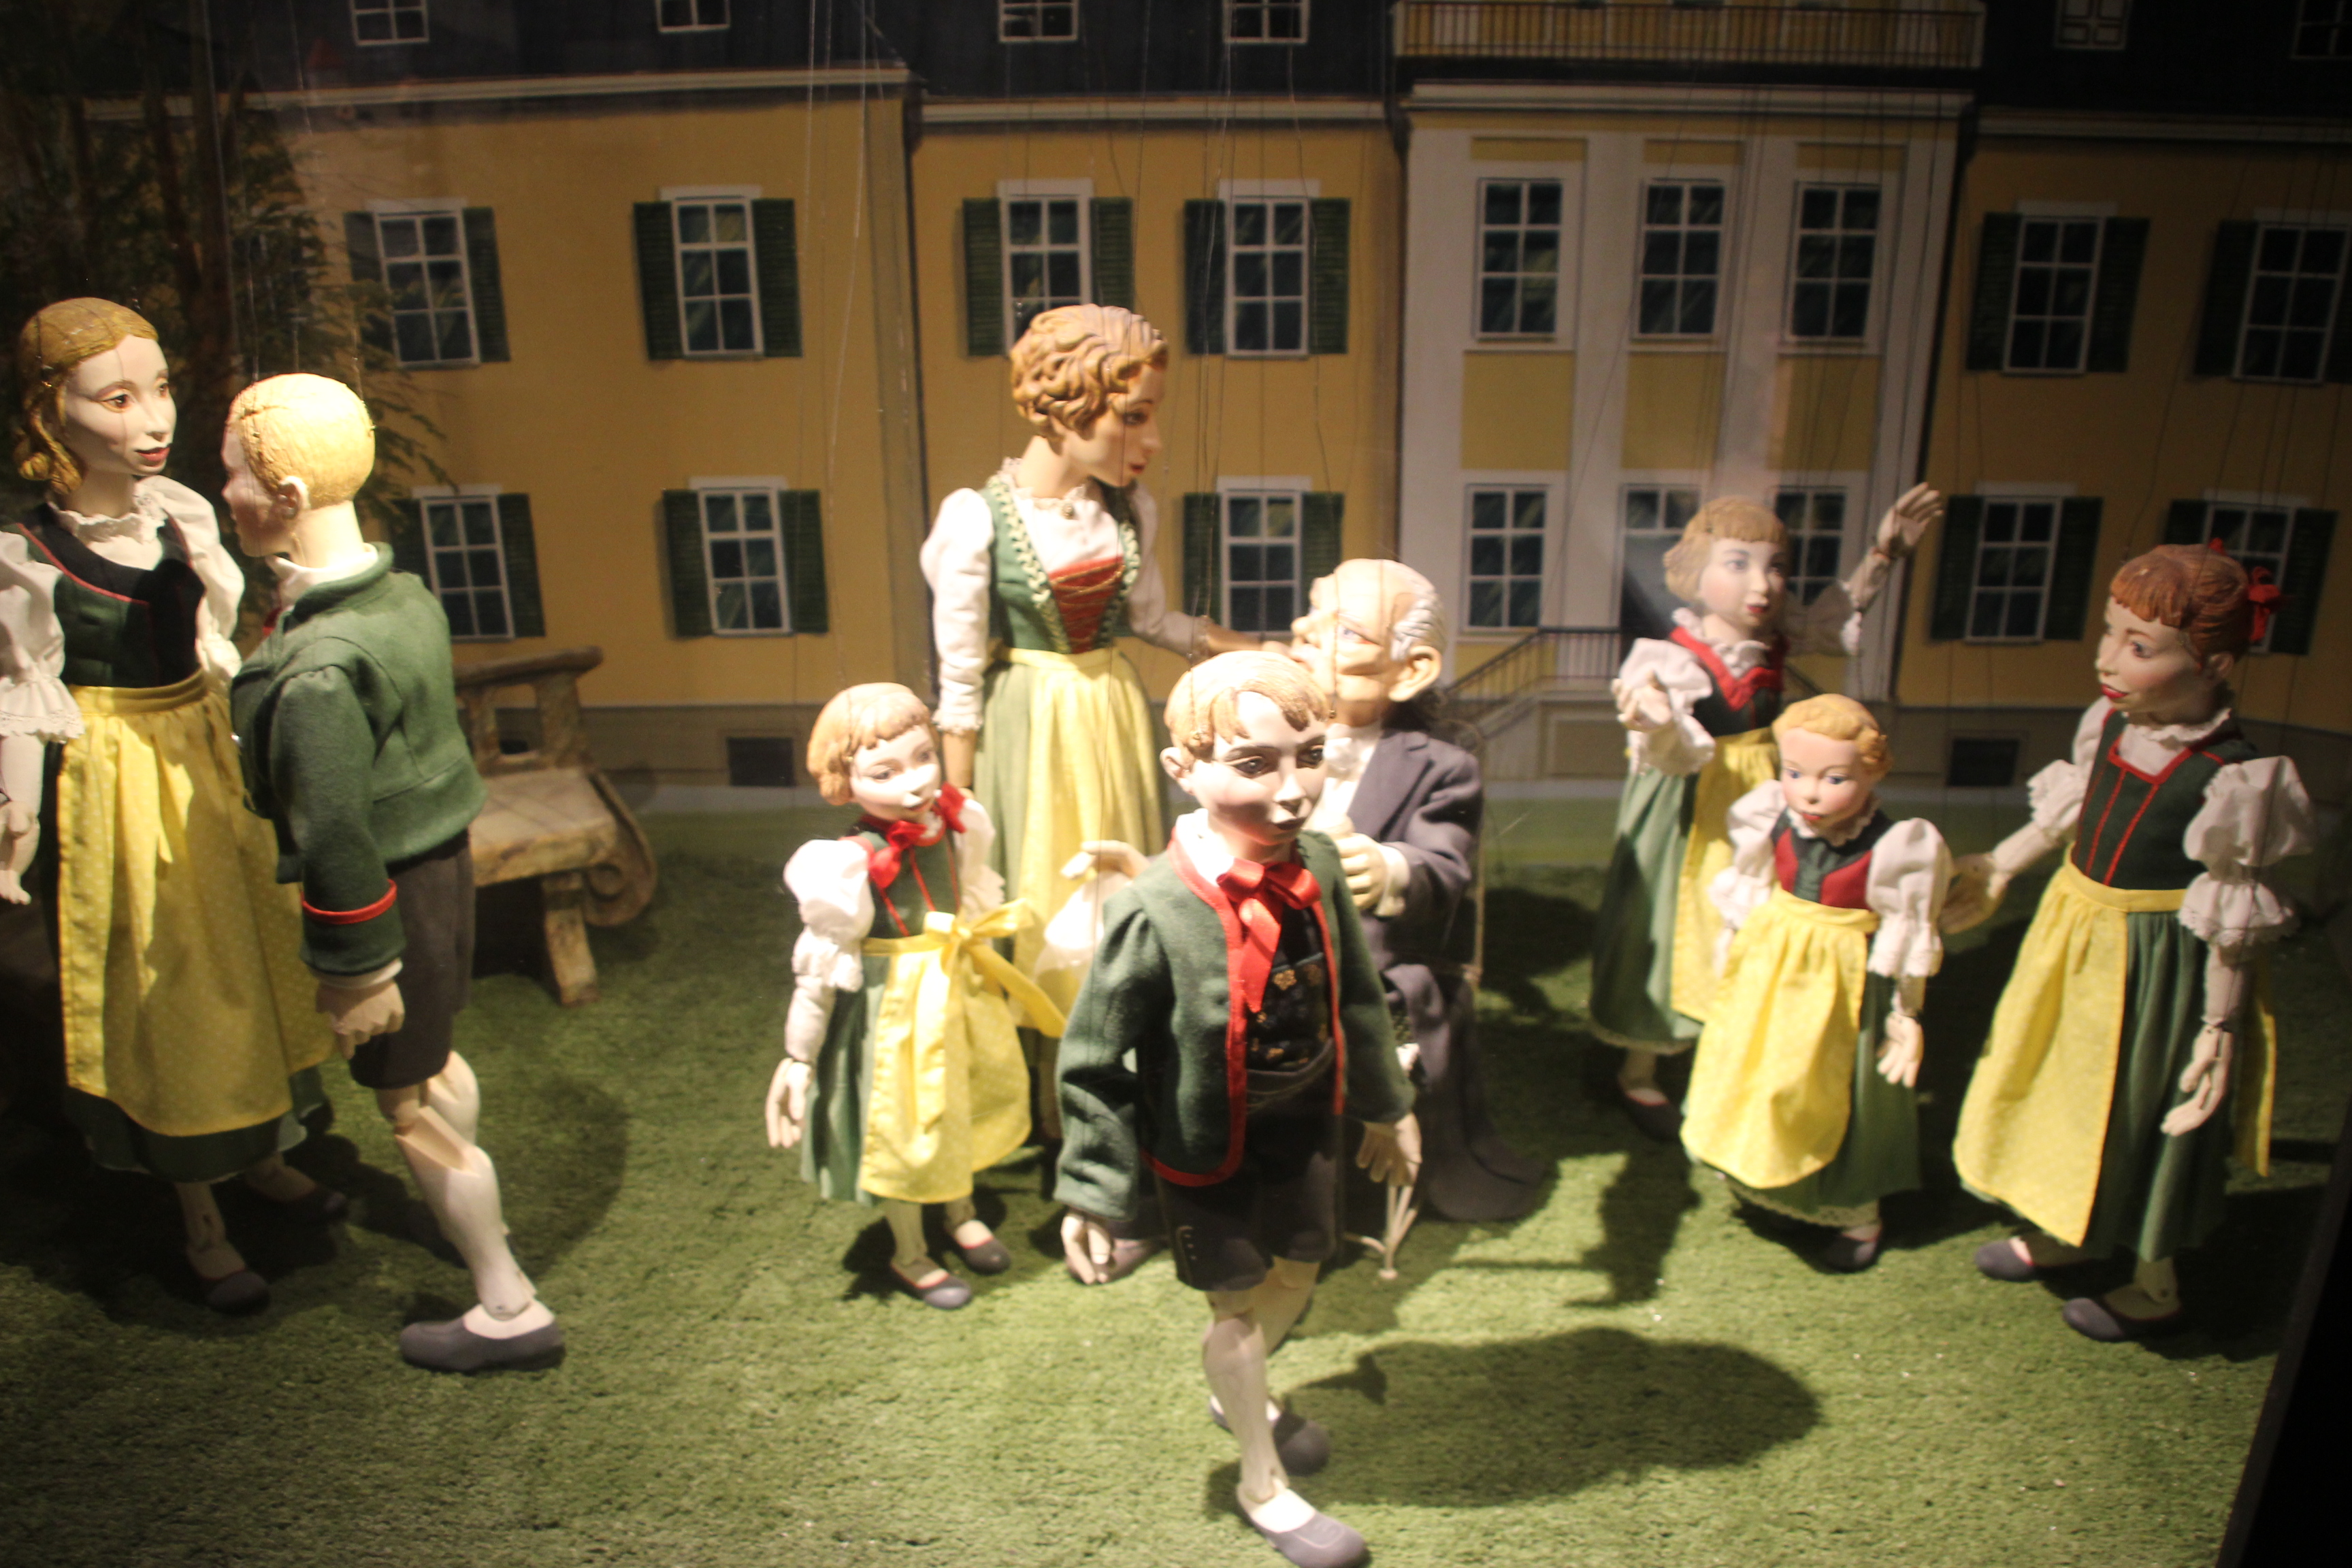 Sound of Music marionettes in the Marionette Museum copyright Wibke Carter